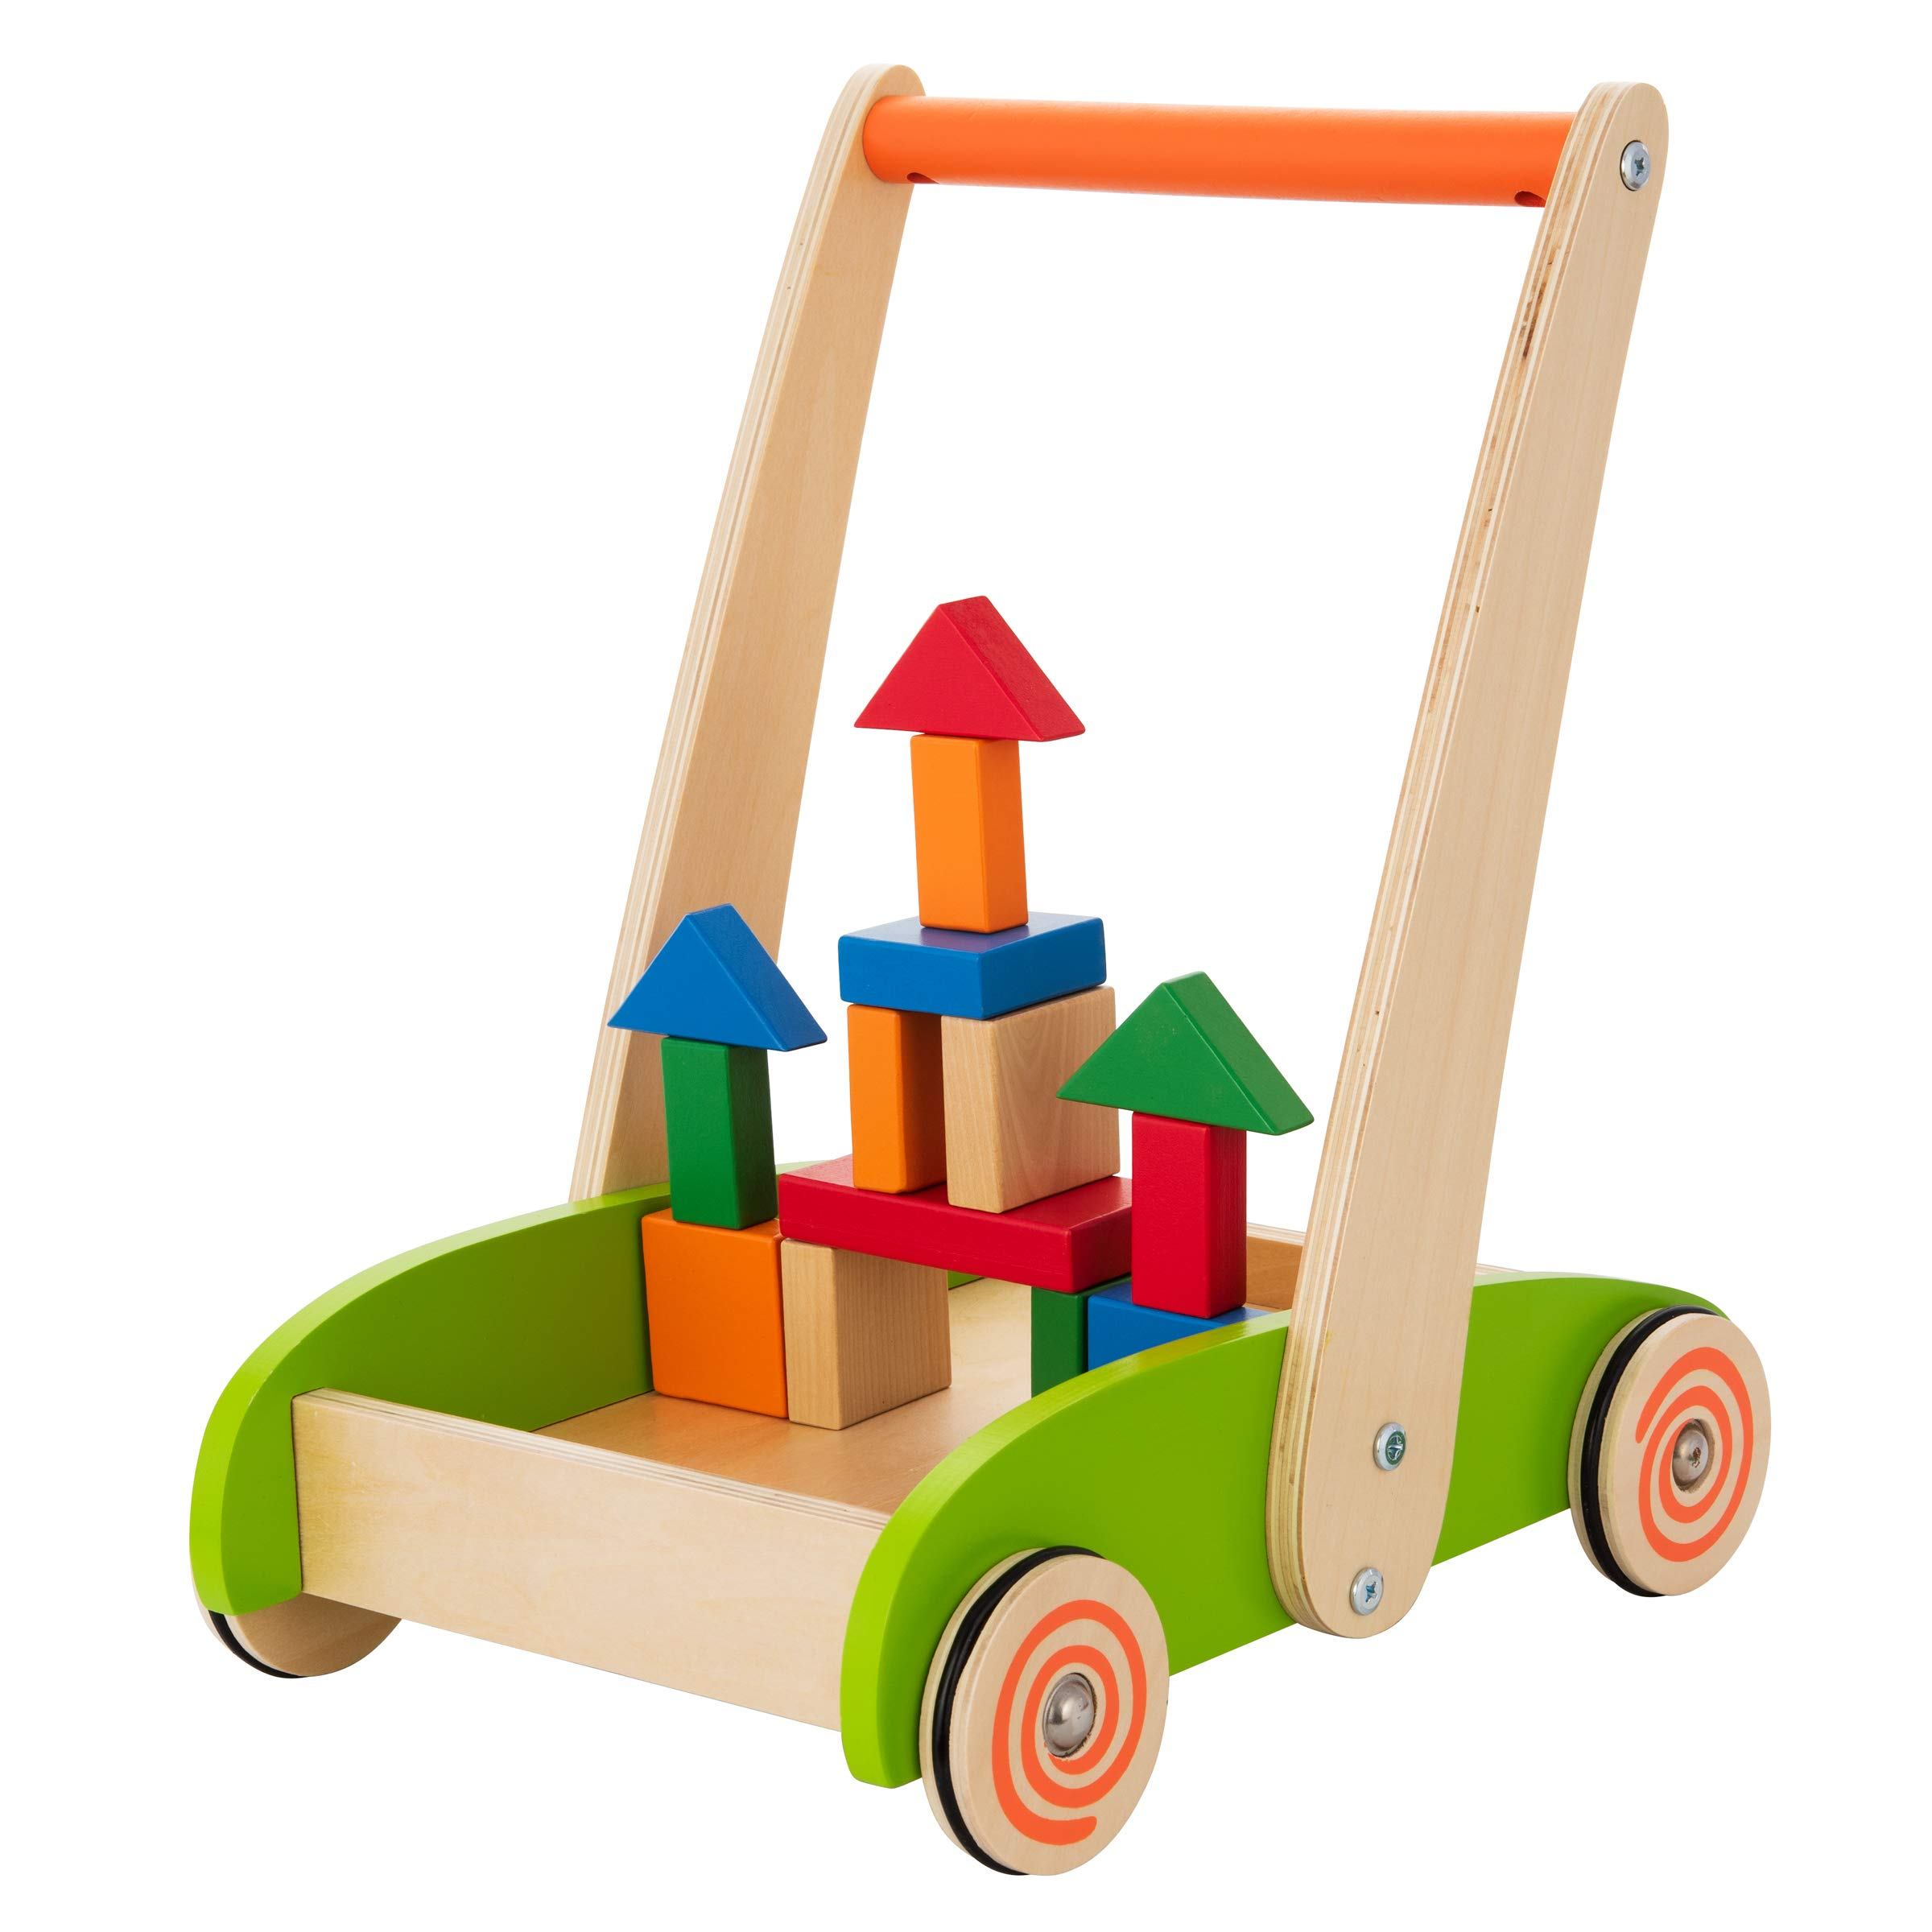 Wooden Baby Learning Toy Walker Toys for 1 Year Old Toddler Push & Pull Walking Toy Colorful Building Blocks Included Stimulates Creativity & Motor Skills Practical Rubber Protects Floors